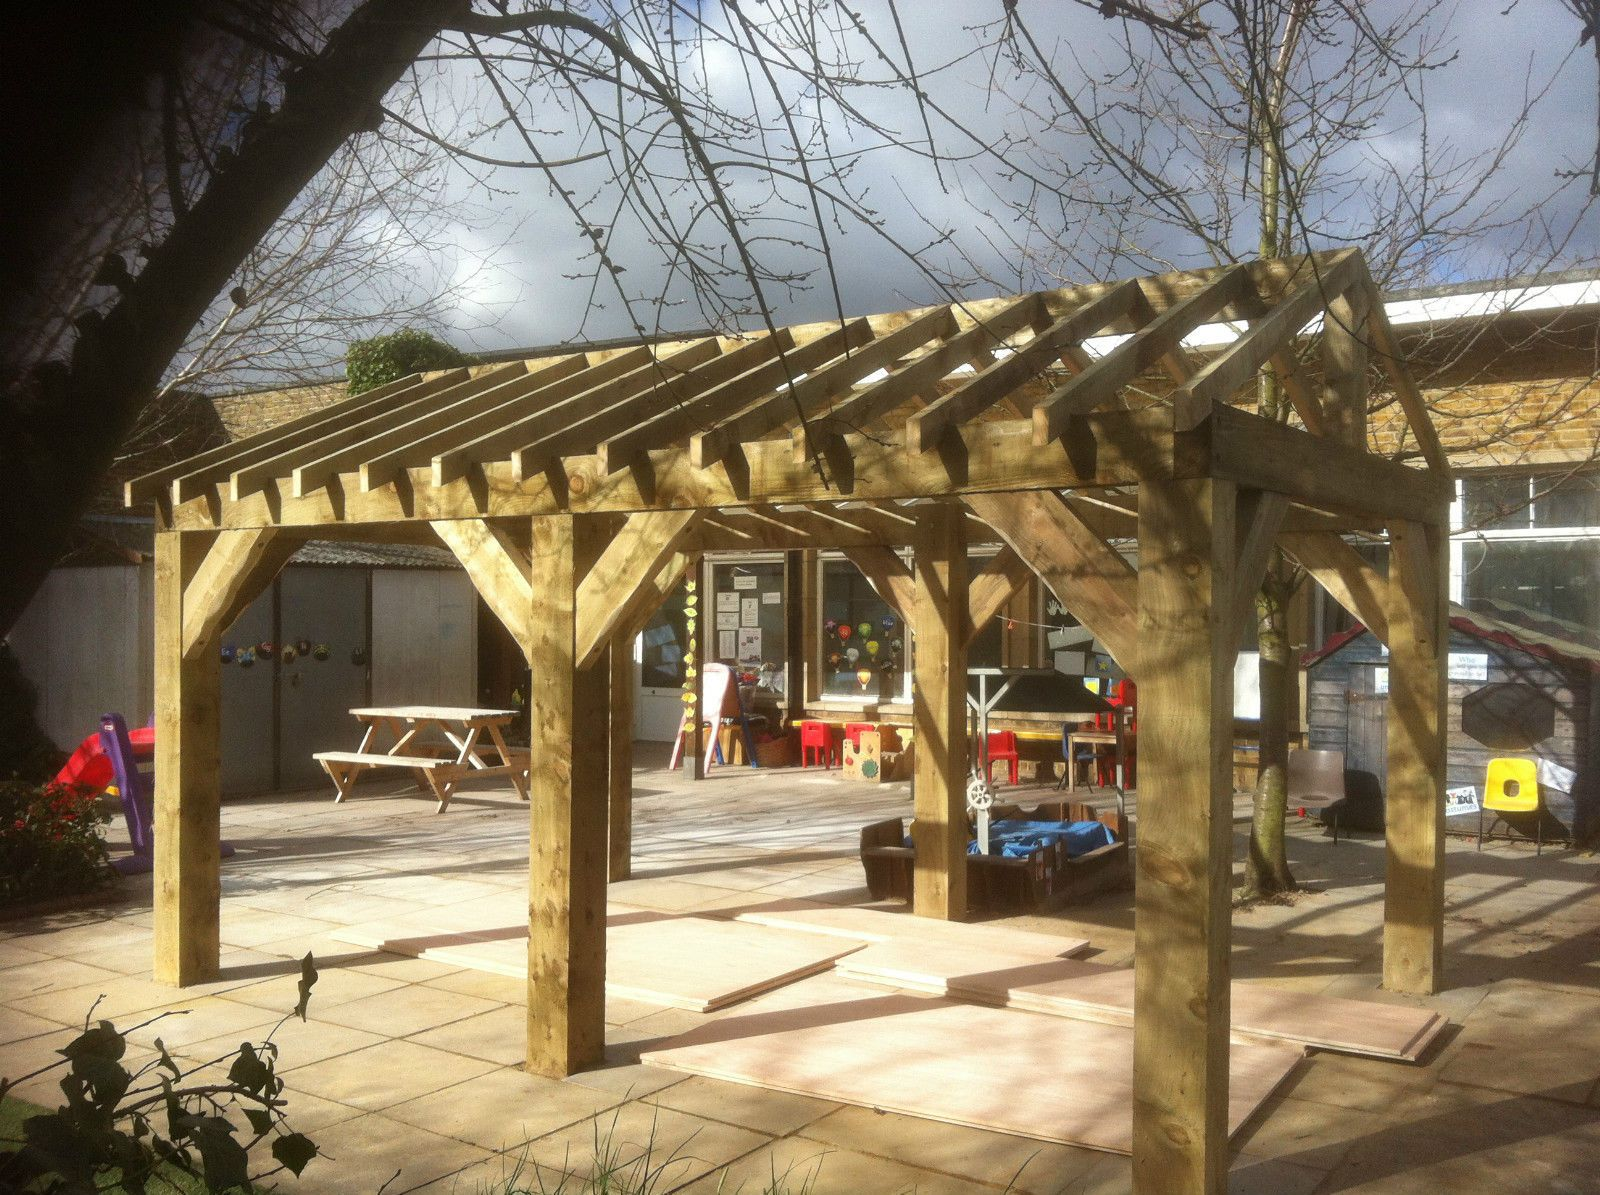 Details about Wooden Garden Shelter, Structure, Gazebo